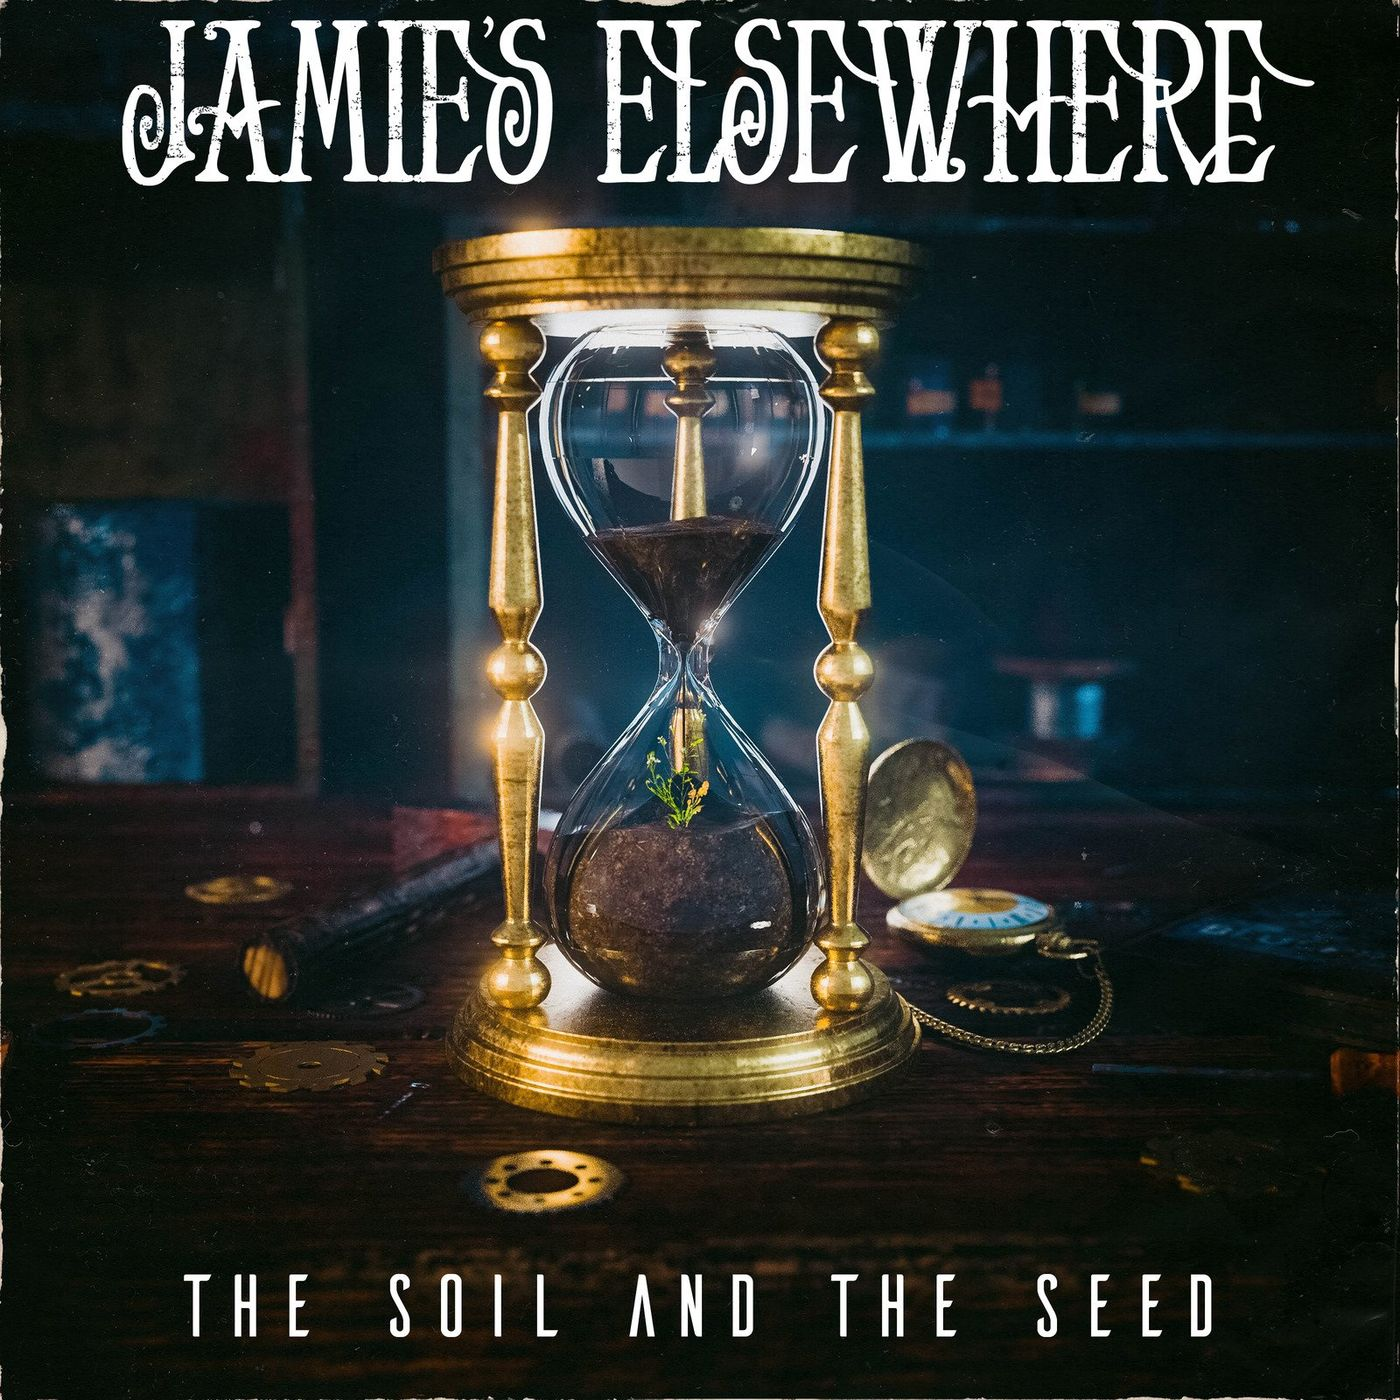 Jamie's Elsewhere - The Soil and the Seed [single] (2020)